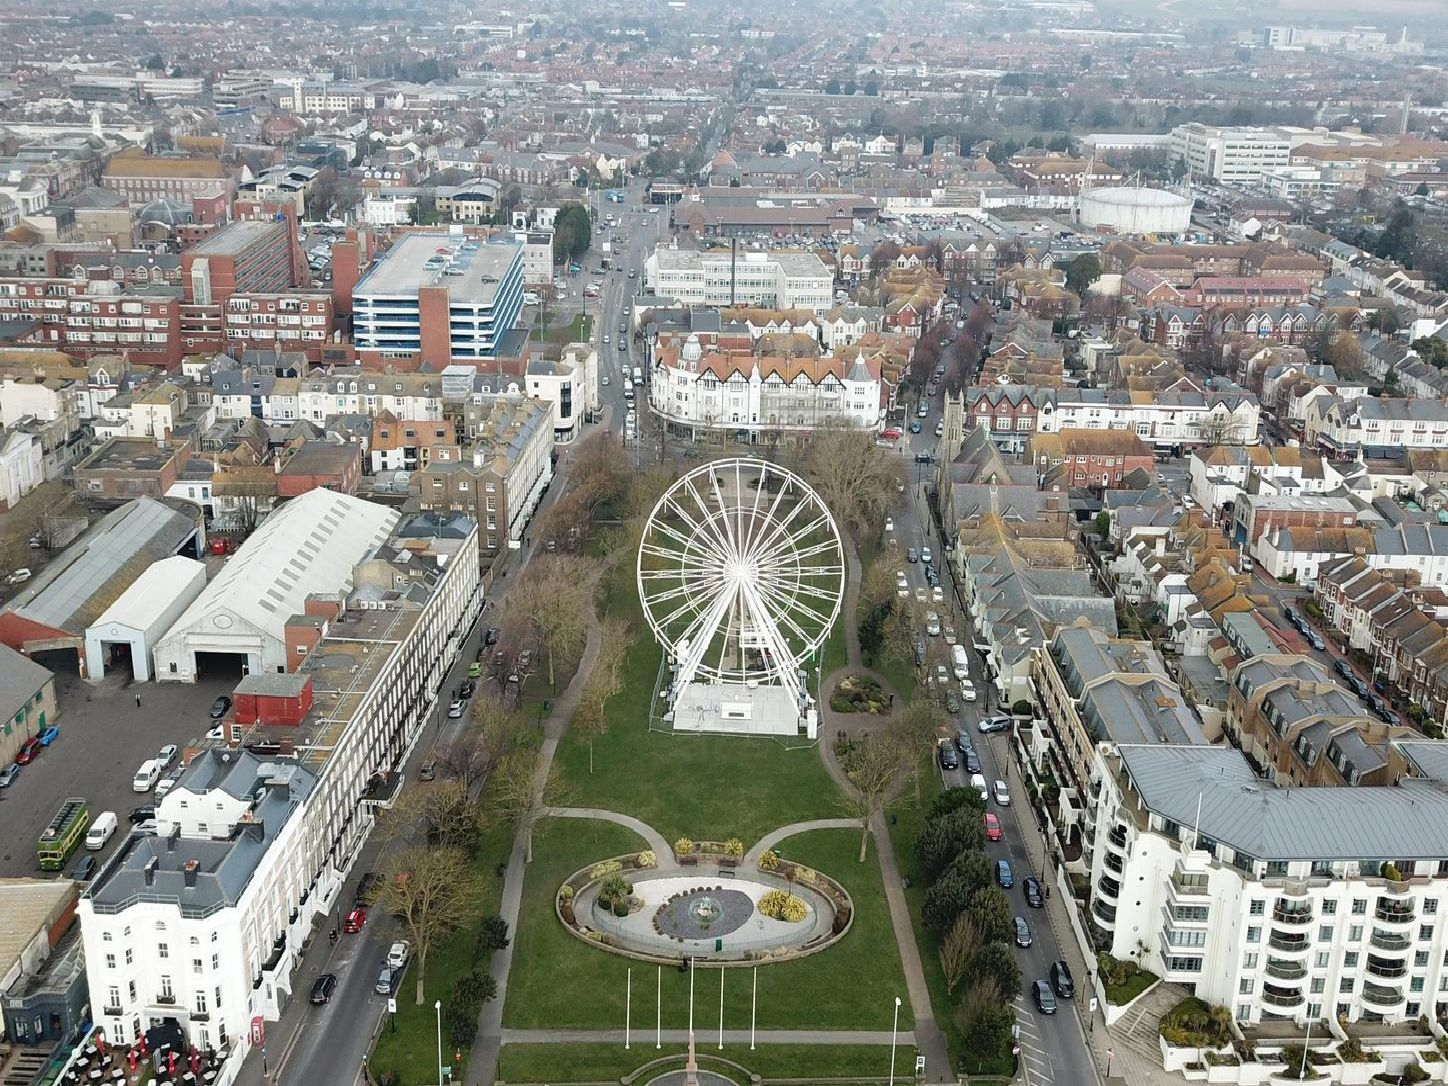 The so-called 'Worthing Wheel' which arrived over the Easter period proved a big hit with residents, despite the bad weather - and readers could not get enough of footage of the attraction taken by a drone. The wheel was so successful, in fact, that it could be coming back to Worthing seafront for three years.